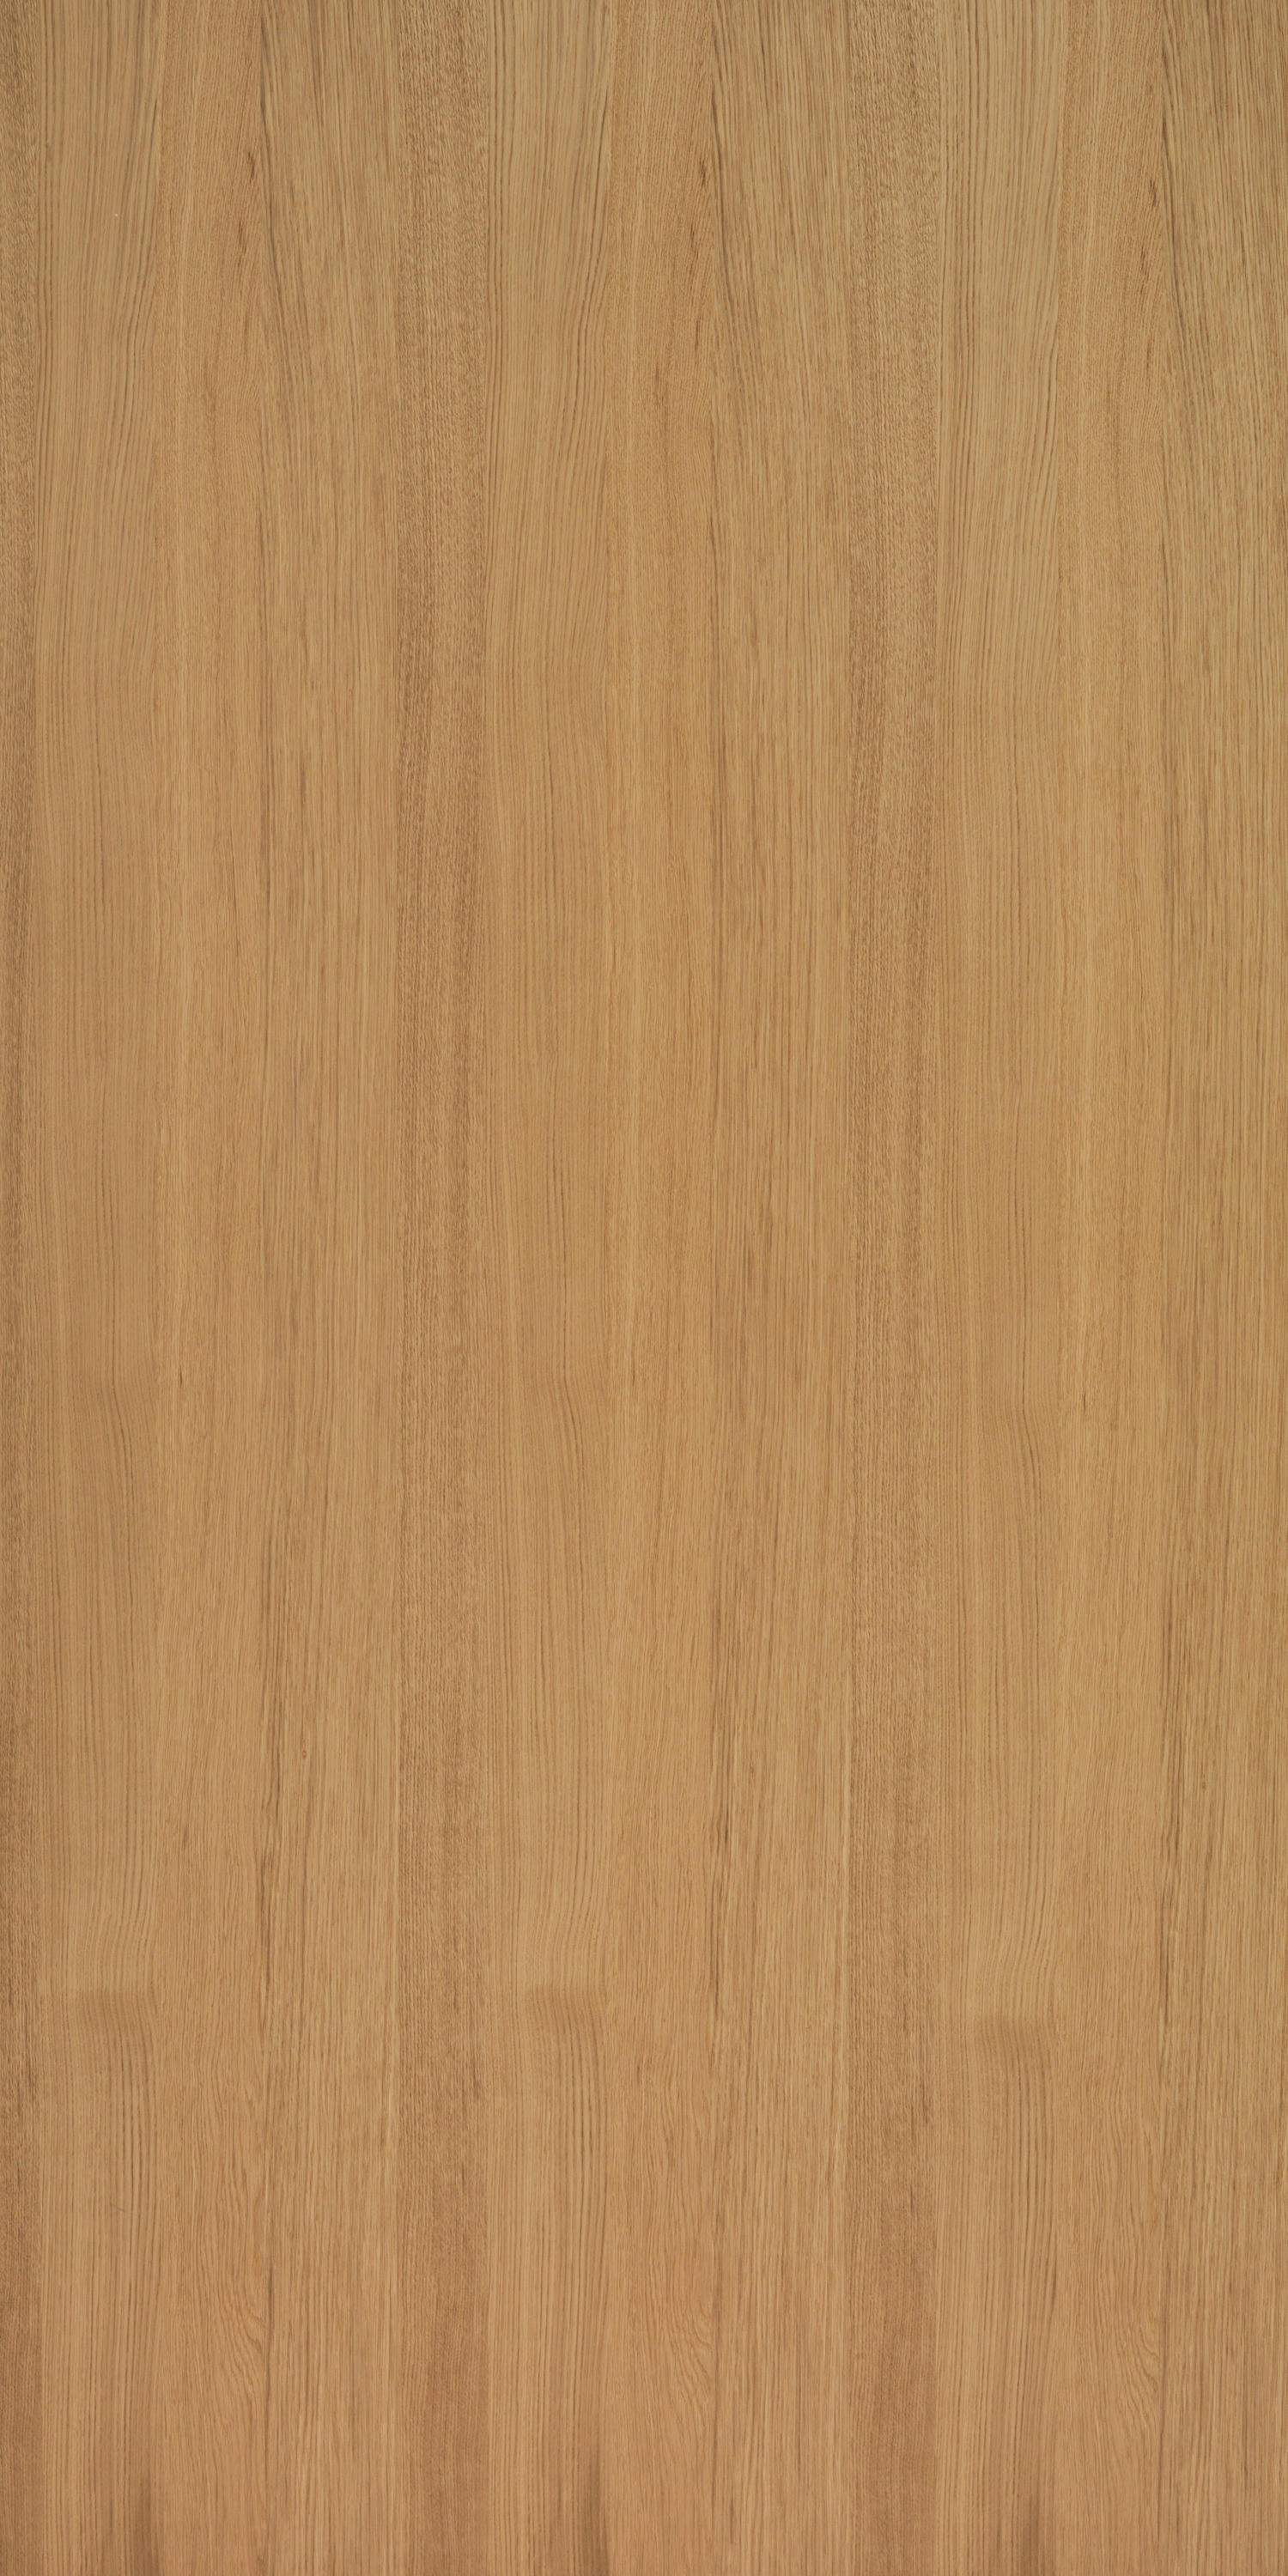 Querkus Oak Naturel Adagio Wall Veneers From Decospan